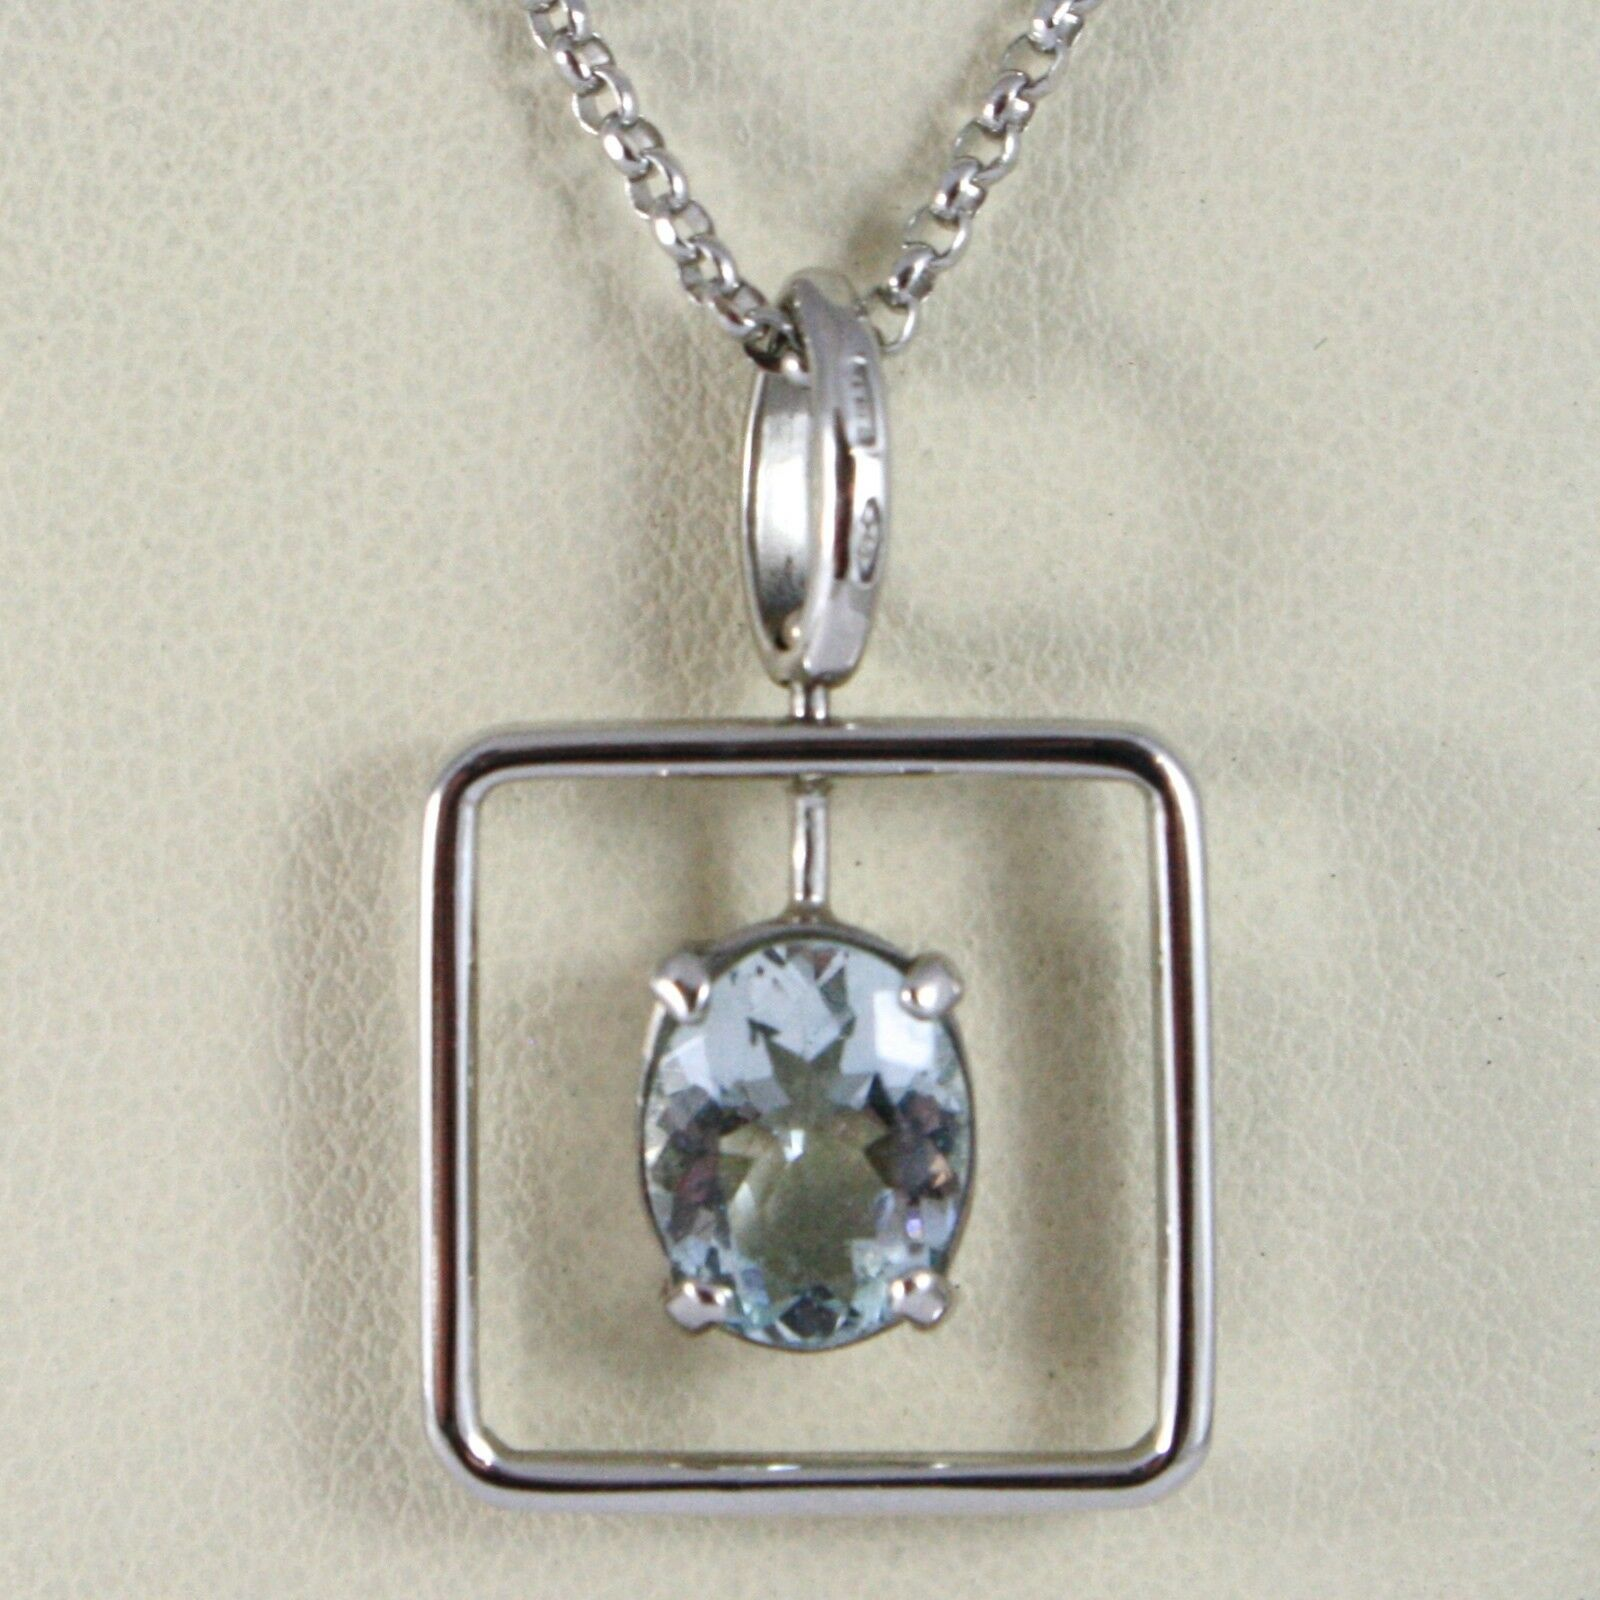 Necklace White Gold 750 - 18K Aquamarine Cut Oval CT 1.80, Chain Rolo '